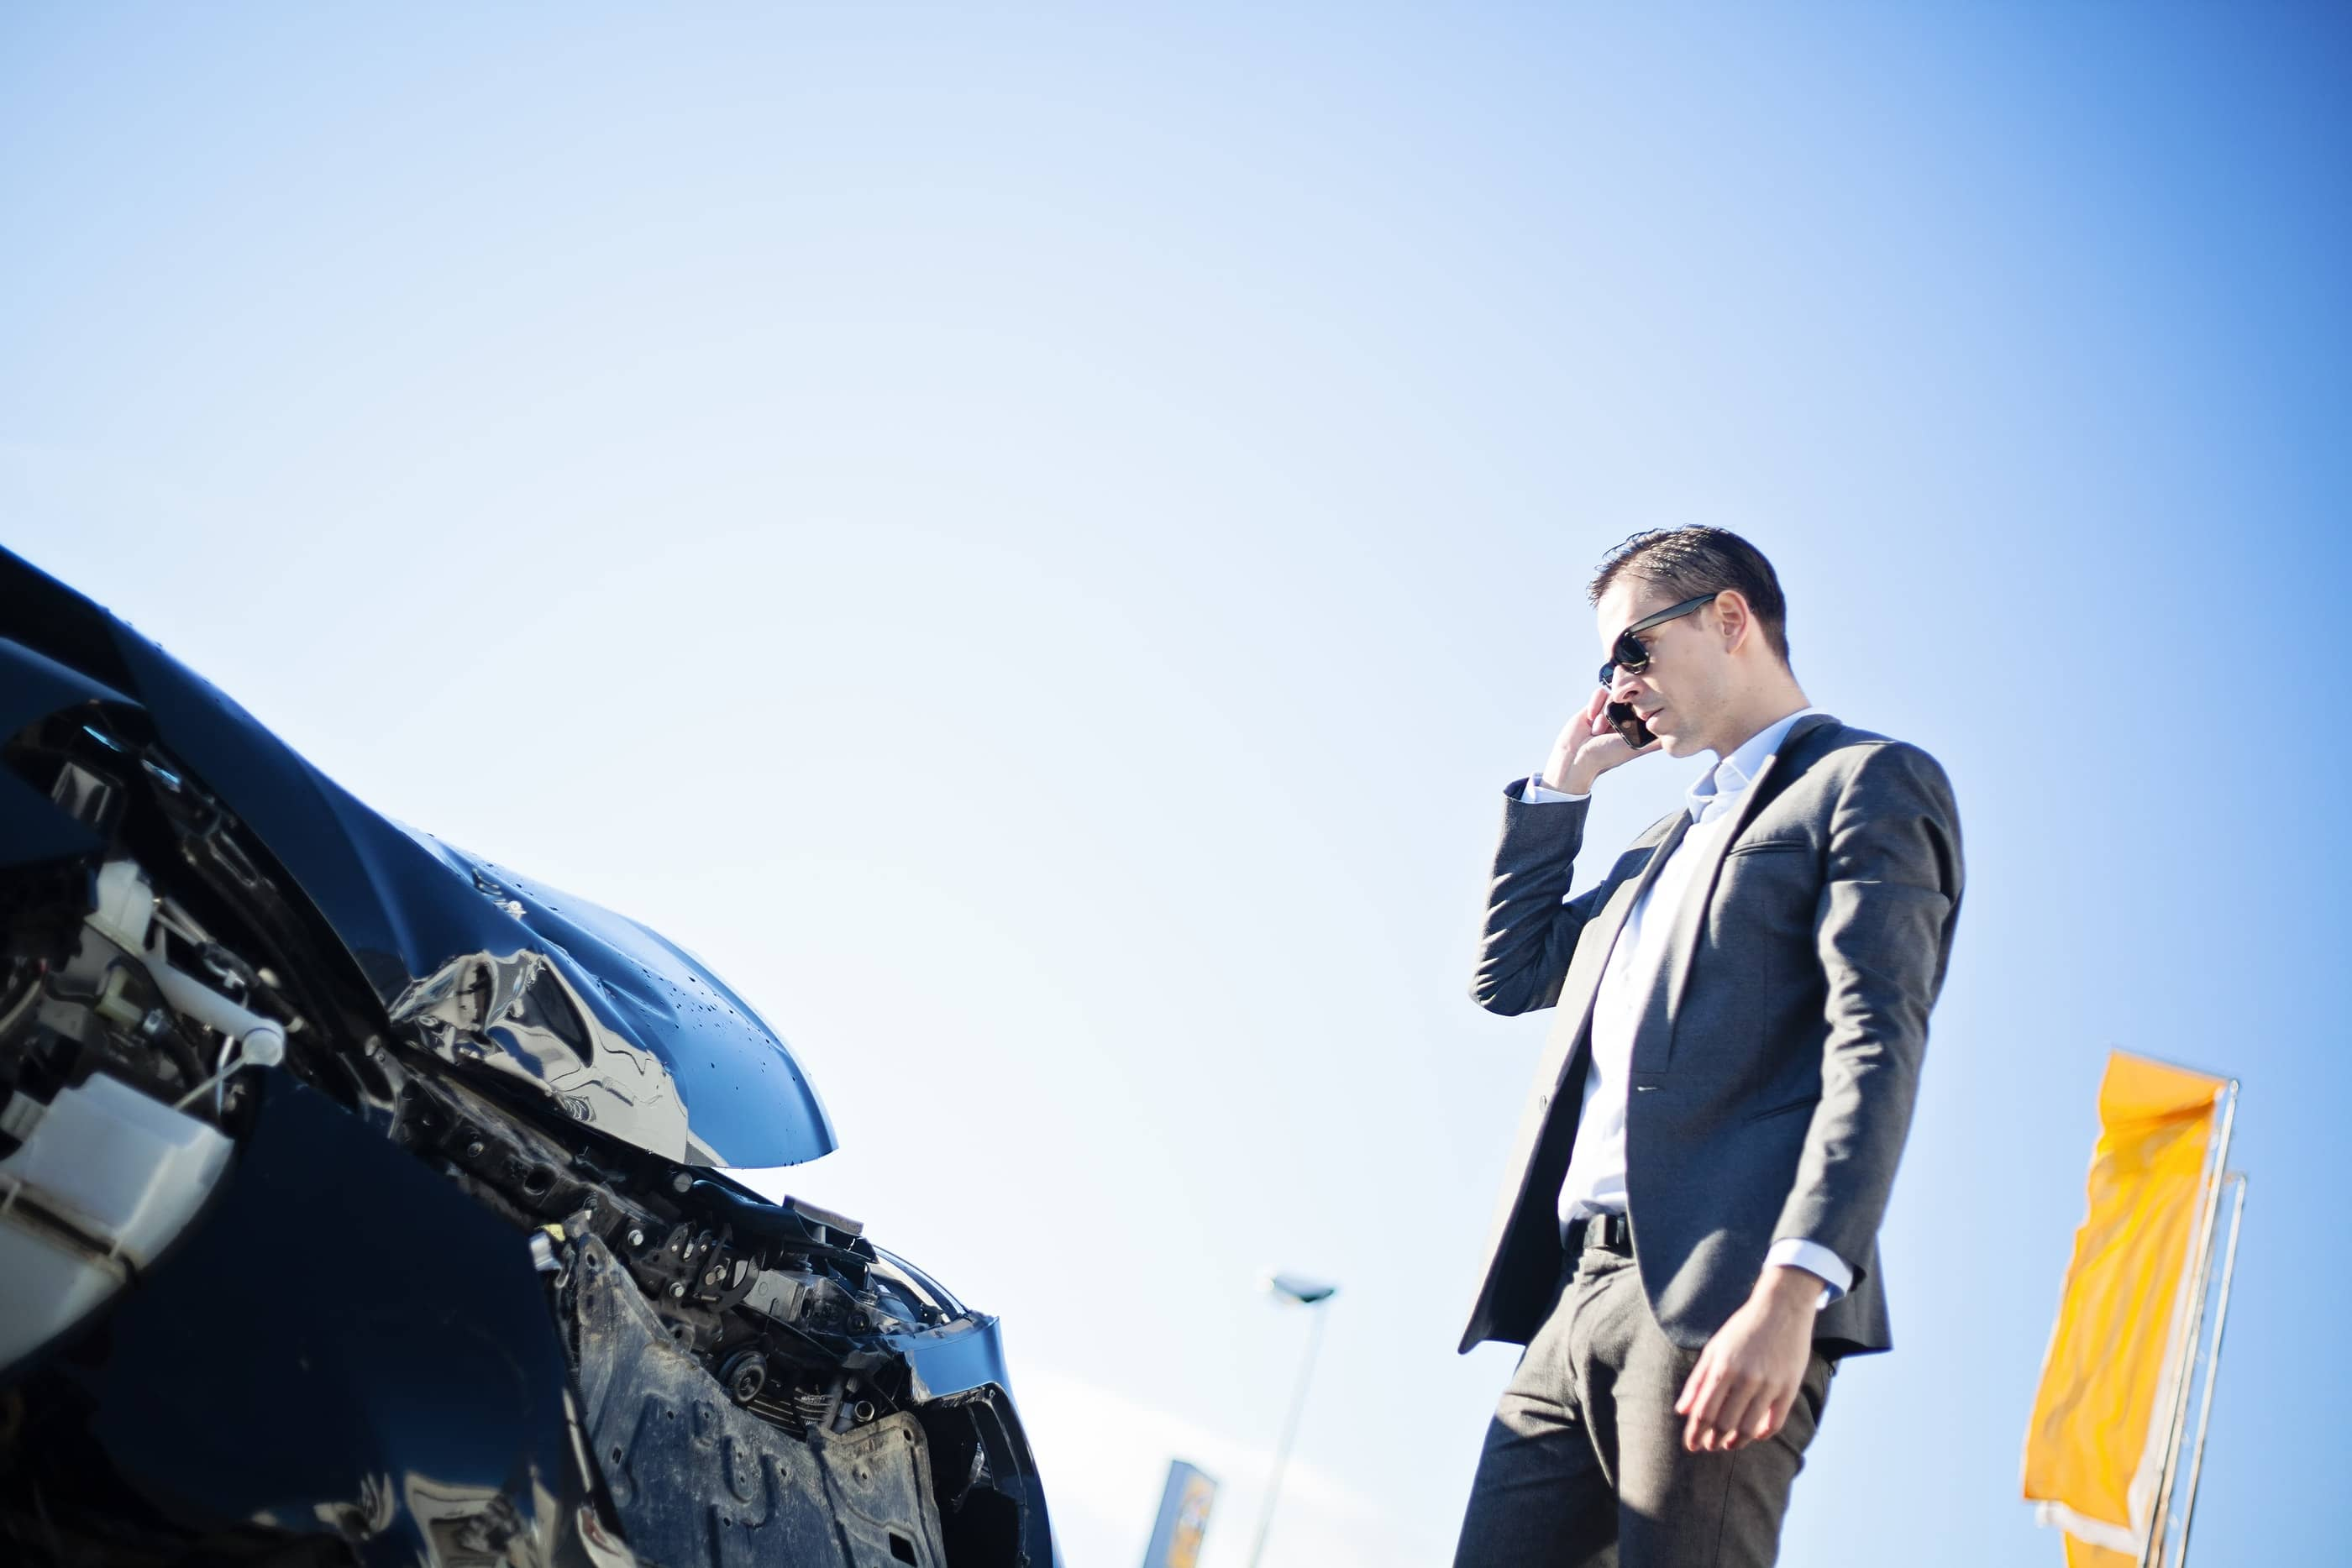 Personal Injury Attorneys: Steps To Take If You've Been Injured